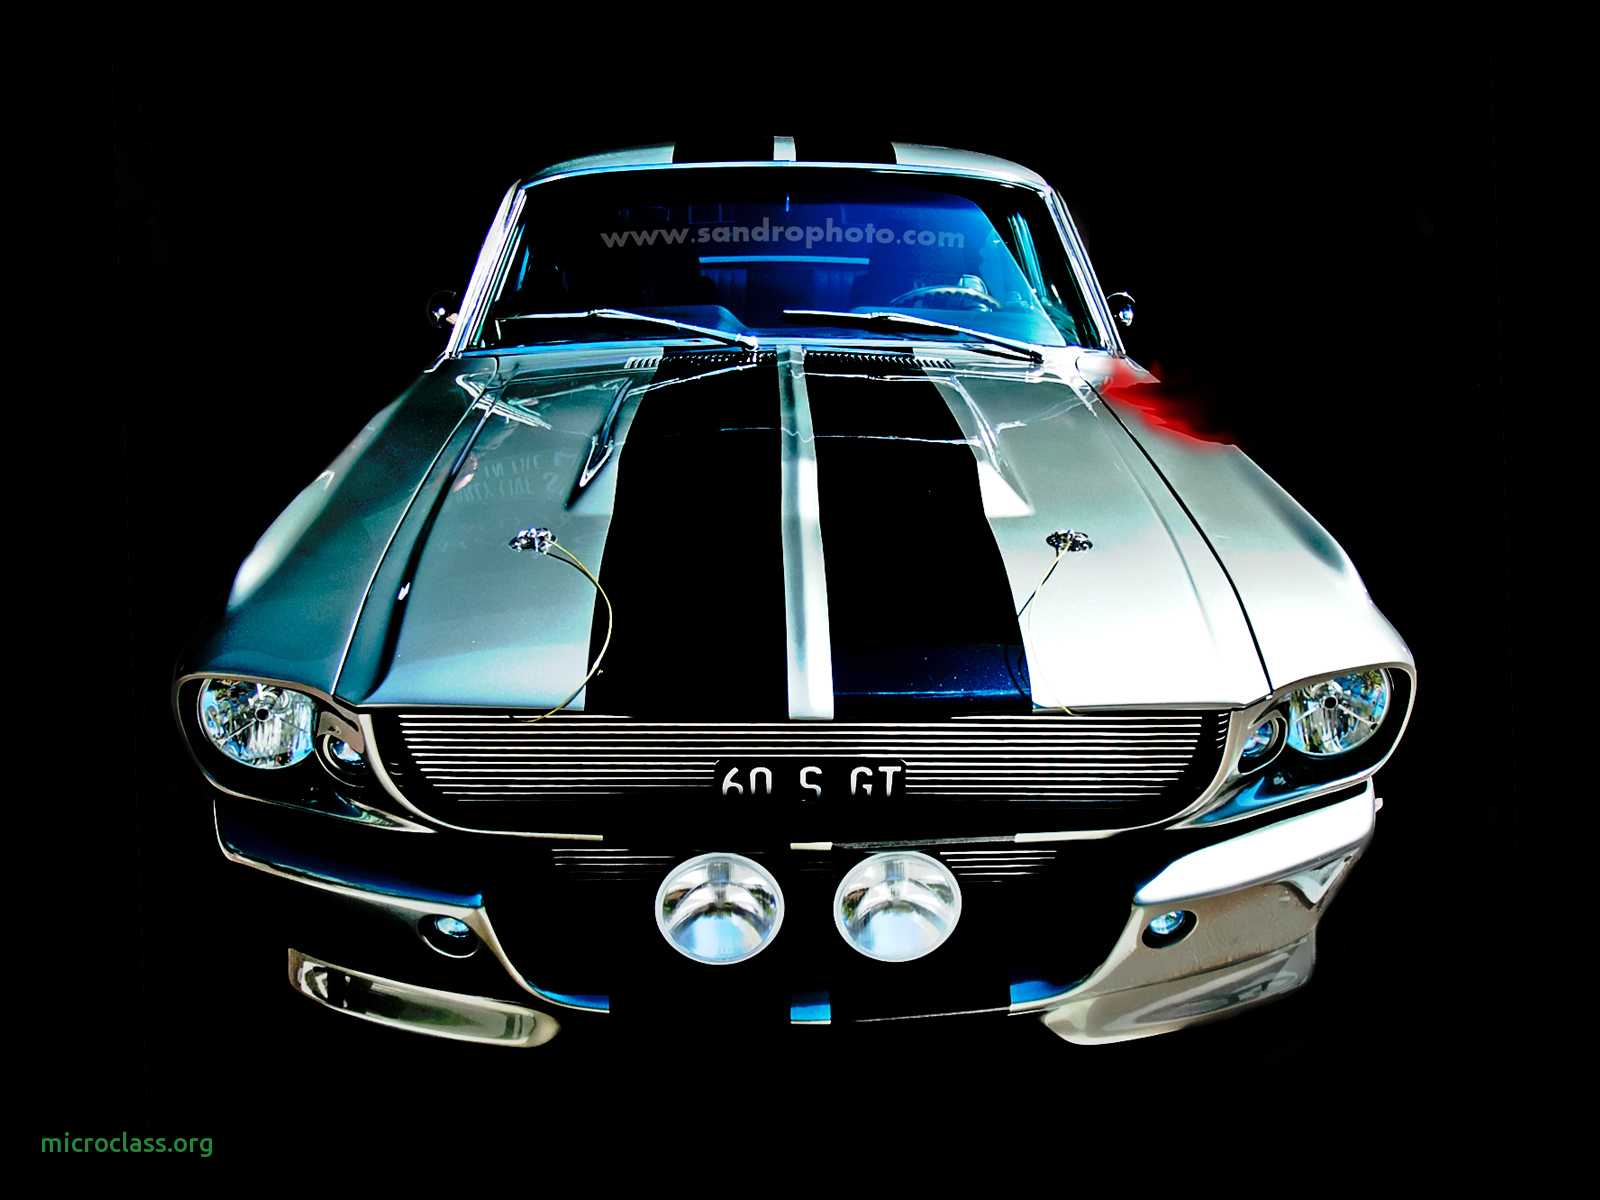 Download Wallpaper - American Muscle Cars Wallpapers For Iphone , HD Wallpaper & Backgrounds